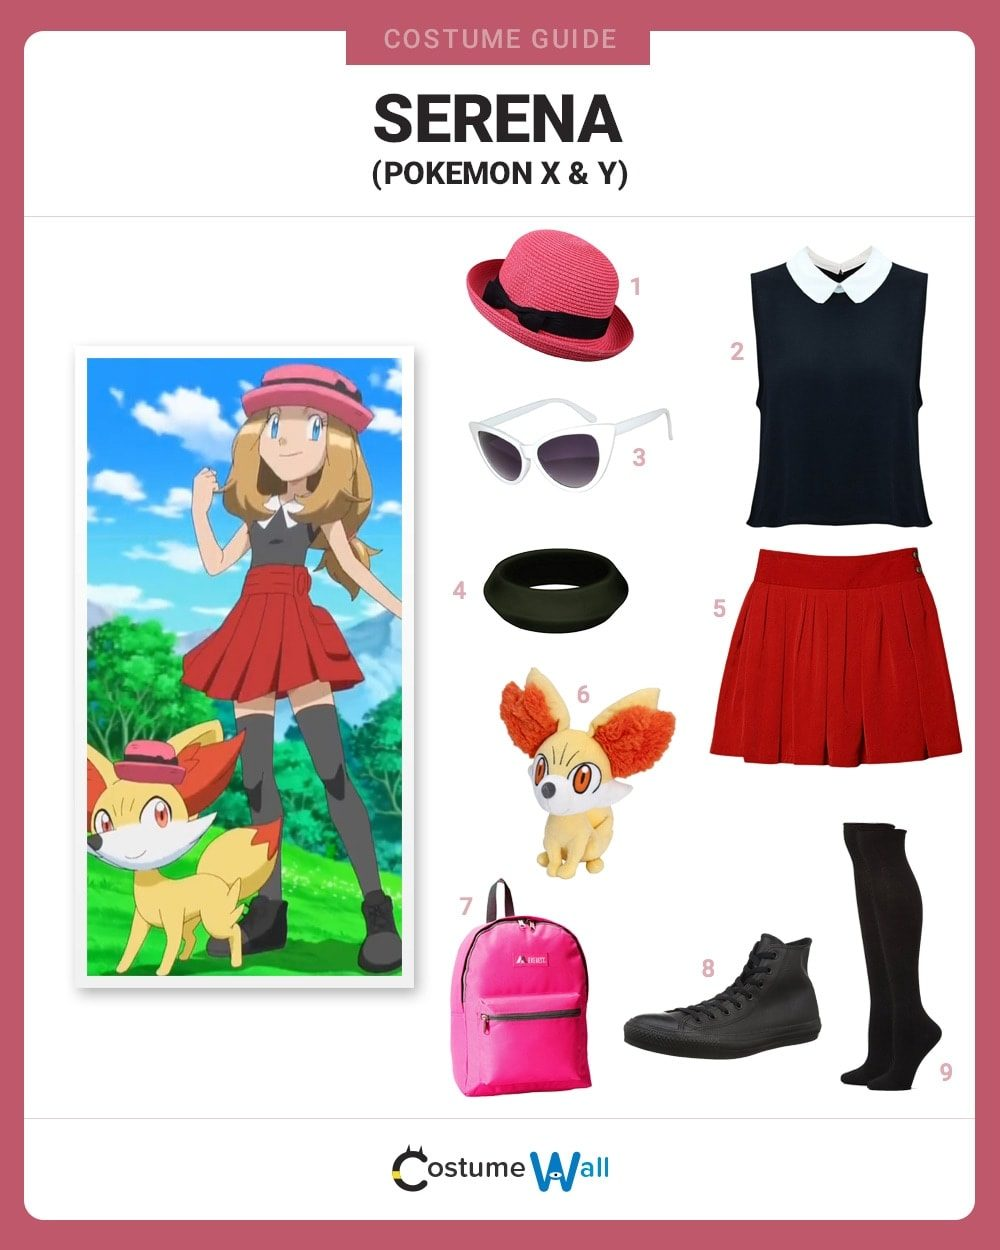 Serena Costume Guide